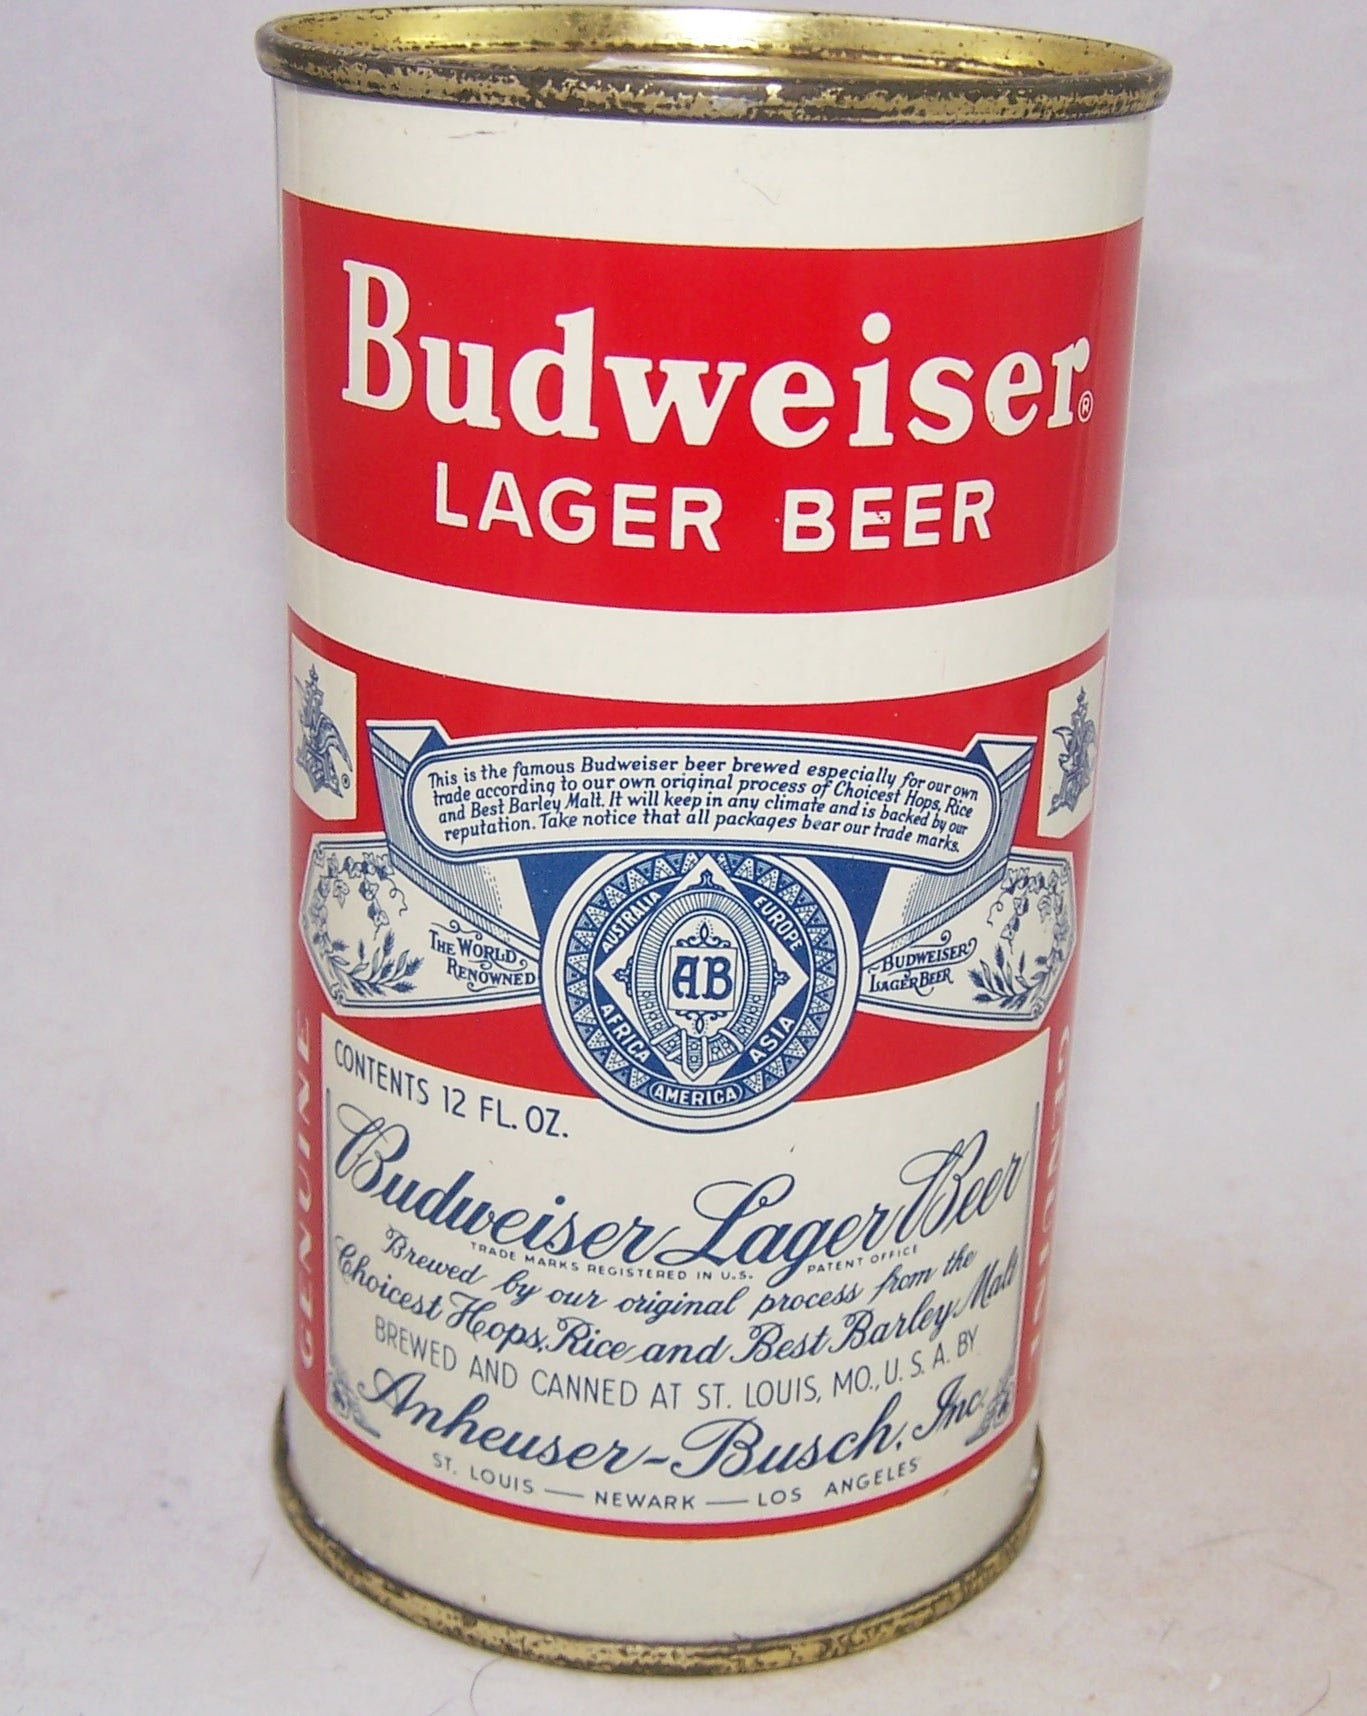 Budweiser Lager Beer, (3 City) USBC 44-13, Grade 1+ Sold on 02/19/18